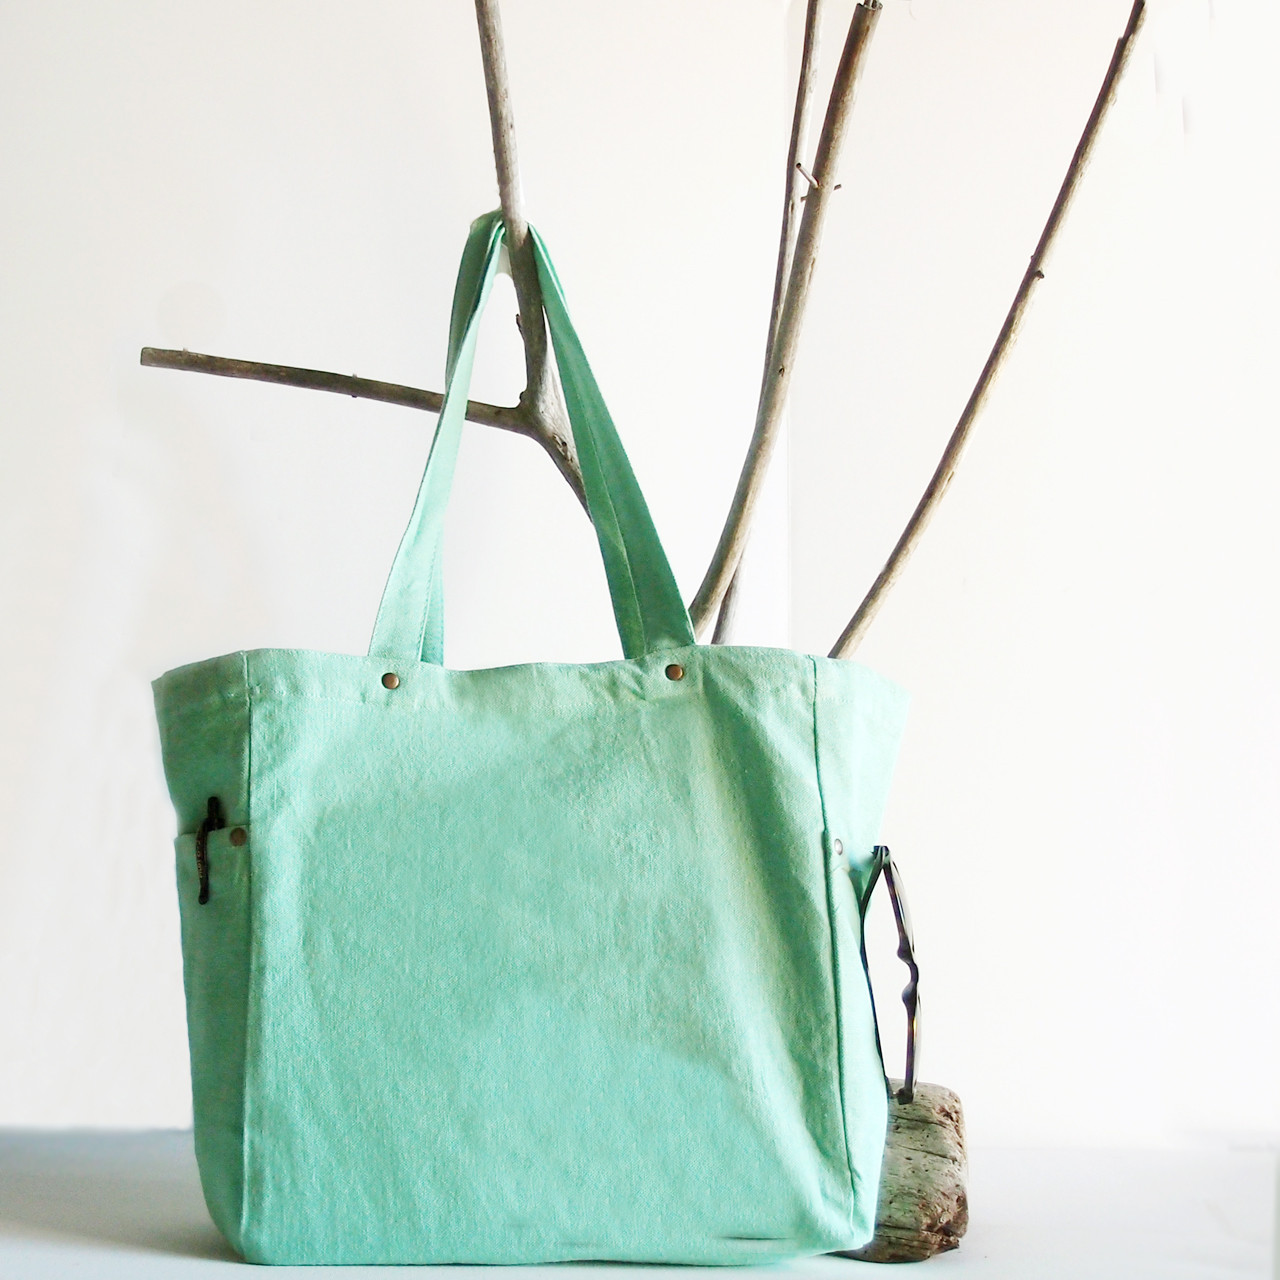 Washed Canvas Tote Bag with Side Pockets Pistachio B798-77, Wholesale Canvas Tote Bags | Packaging Decor